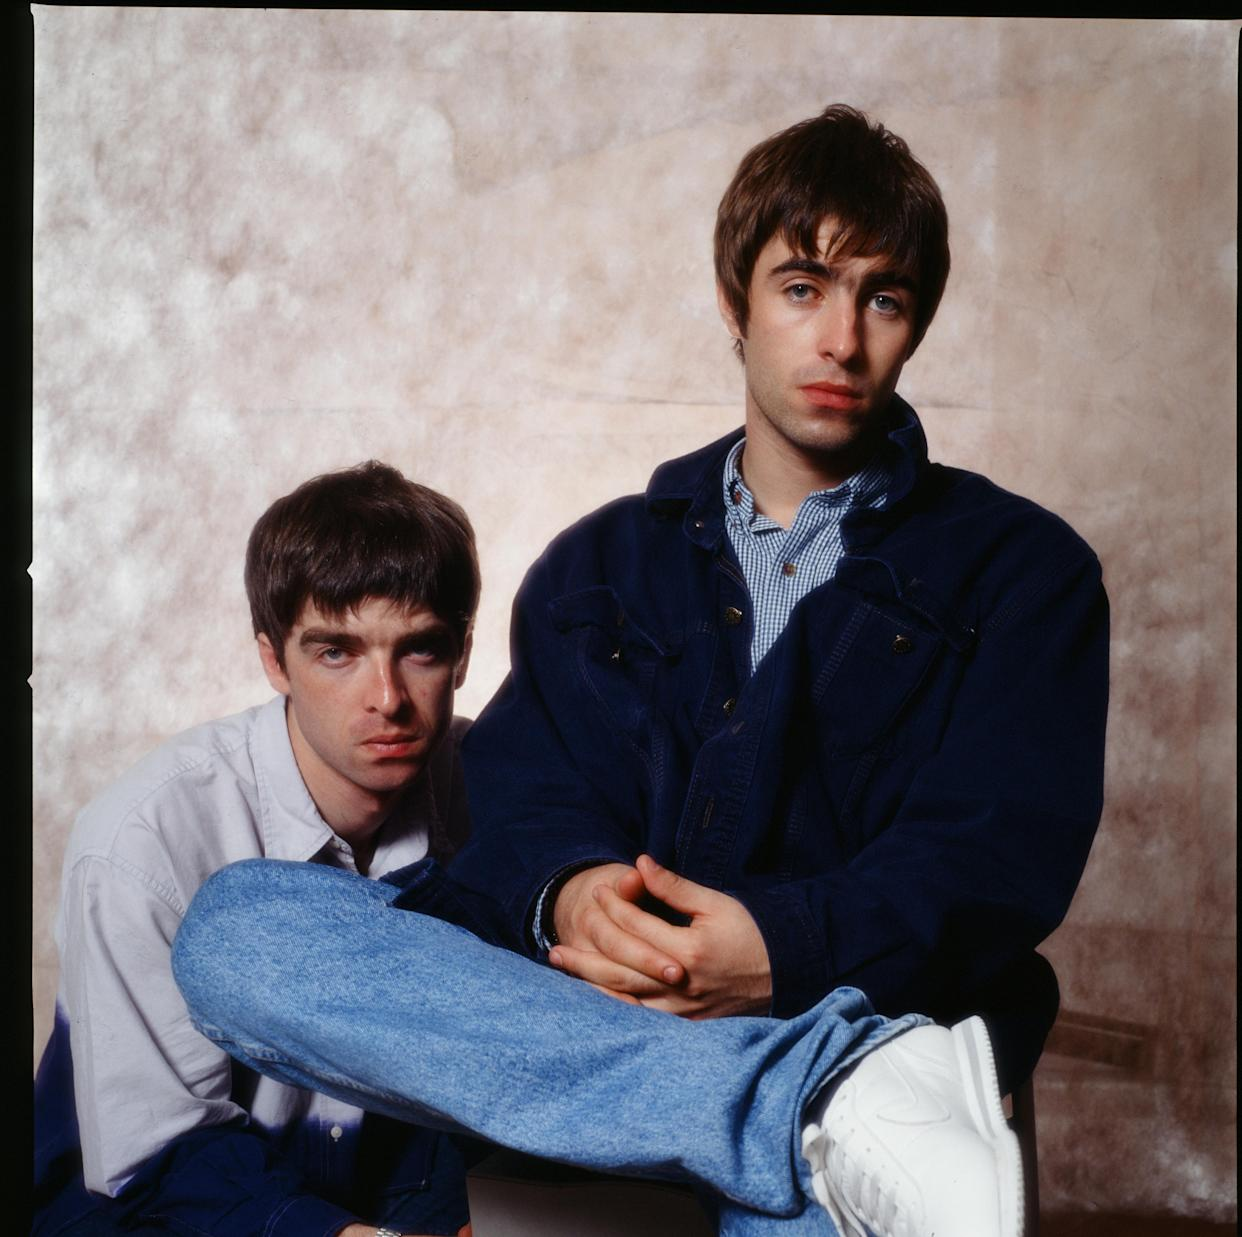 (MANDATORY CREDIT Koh Hasebe/Shinko Music/Getty Images) Noel Gallagher and Liam Gallagher of Oasis, at a photoshoot in a hotel in Tokyo, September 1994. (Photo by Koh Hasebe/Shinko Music/Getty Images)